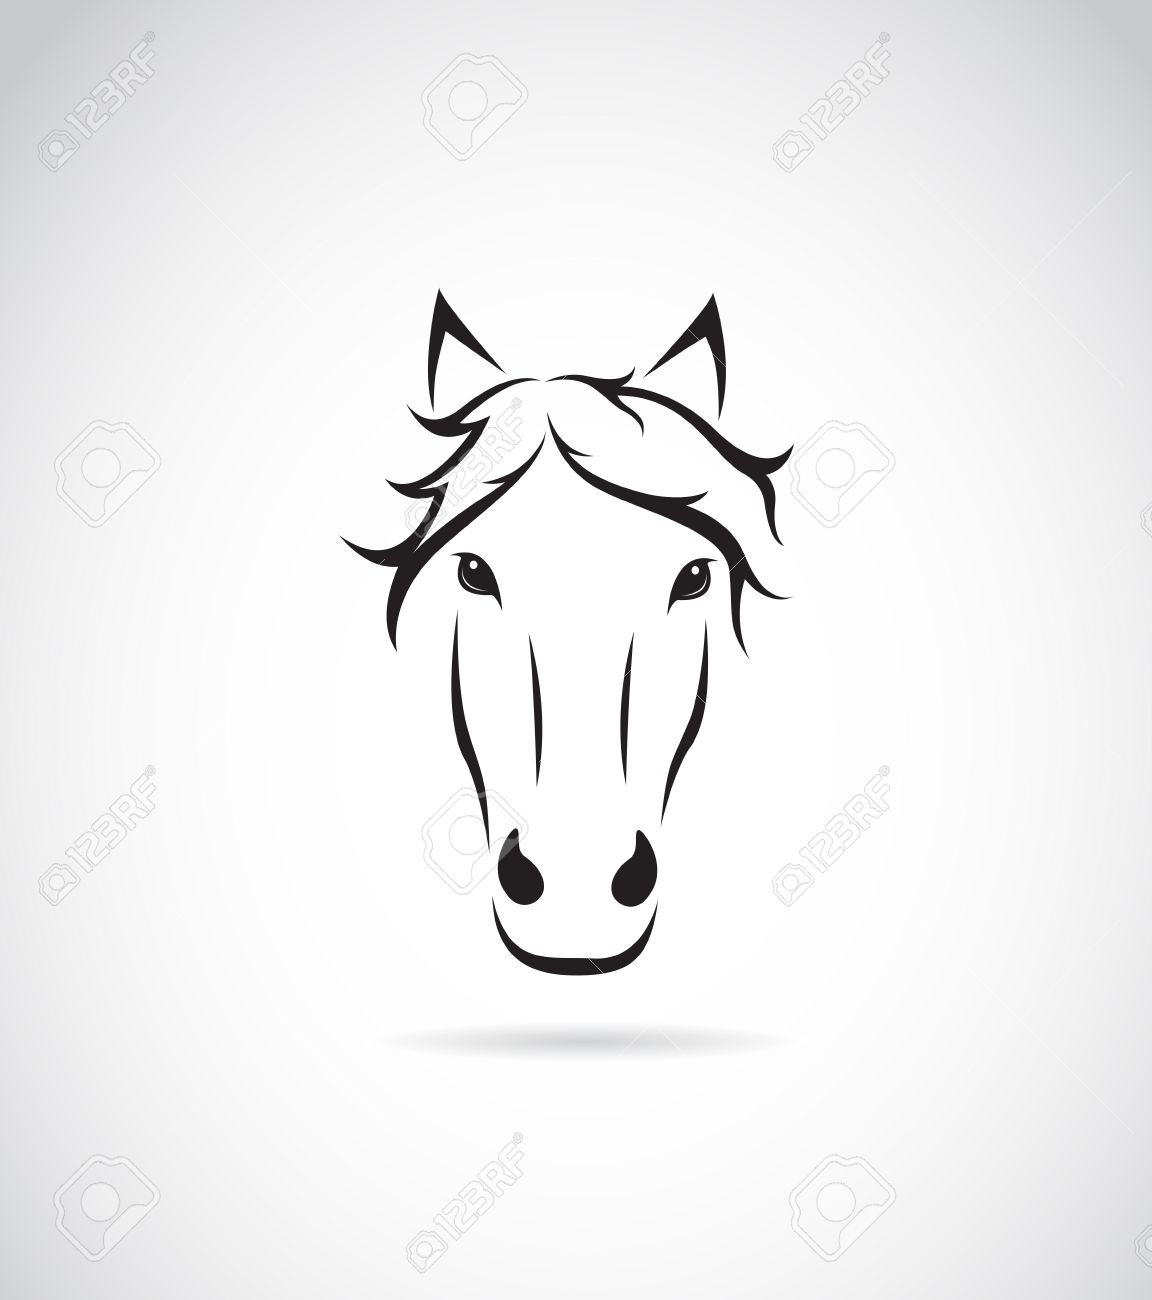 Vector Image Of An Horse Face On White Background Royalty Free